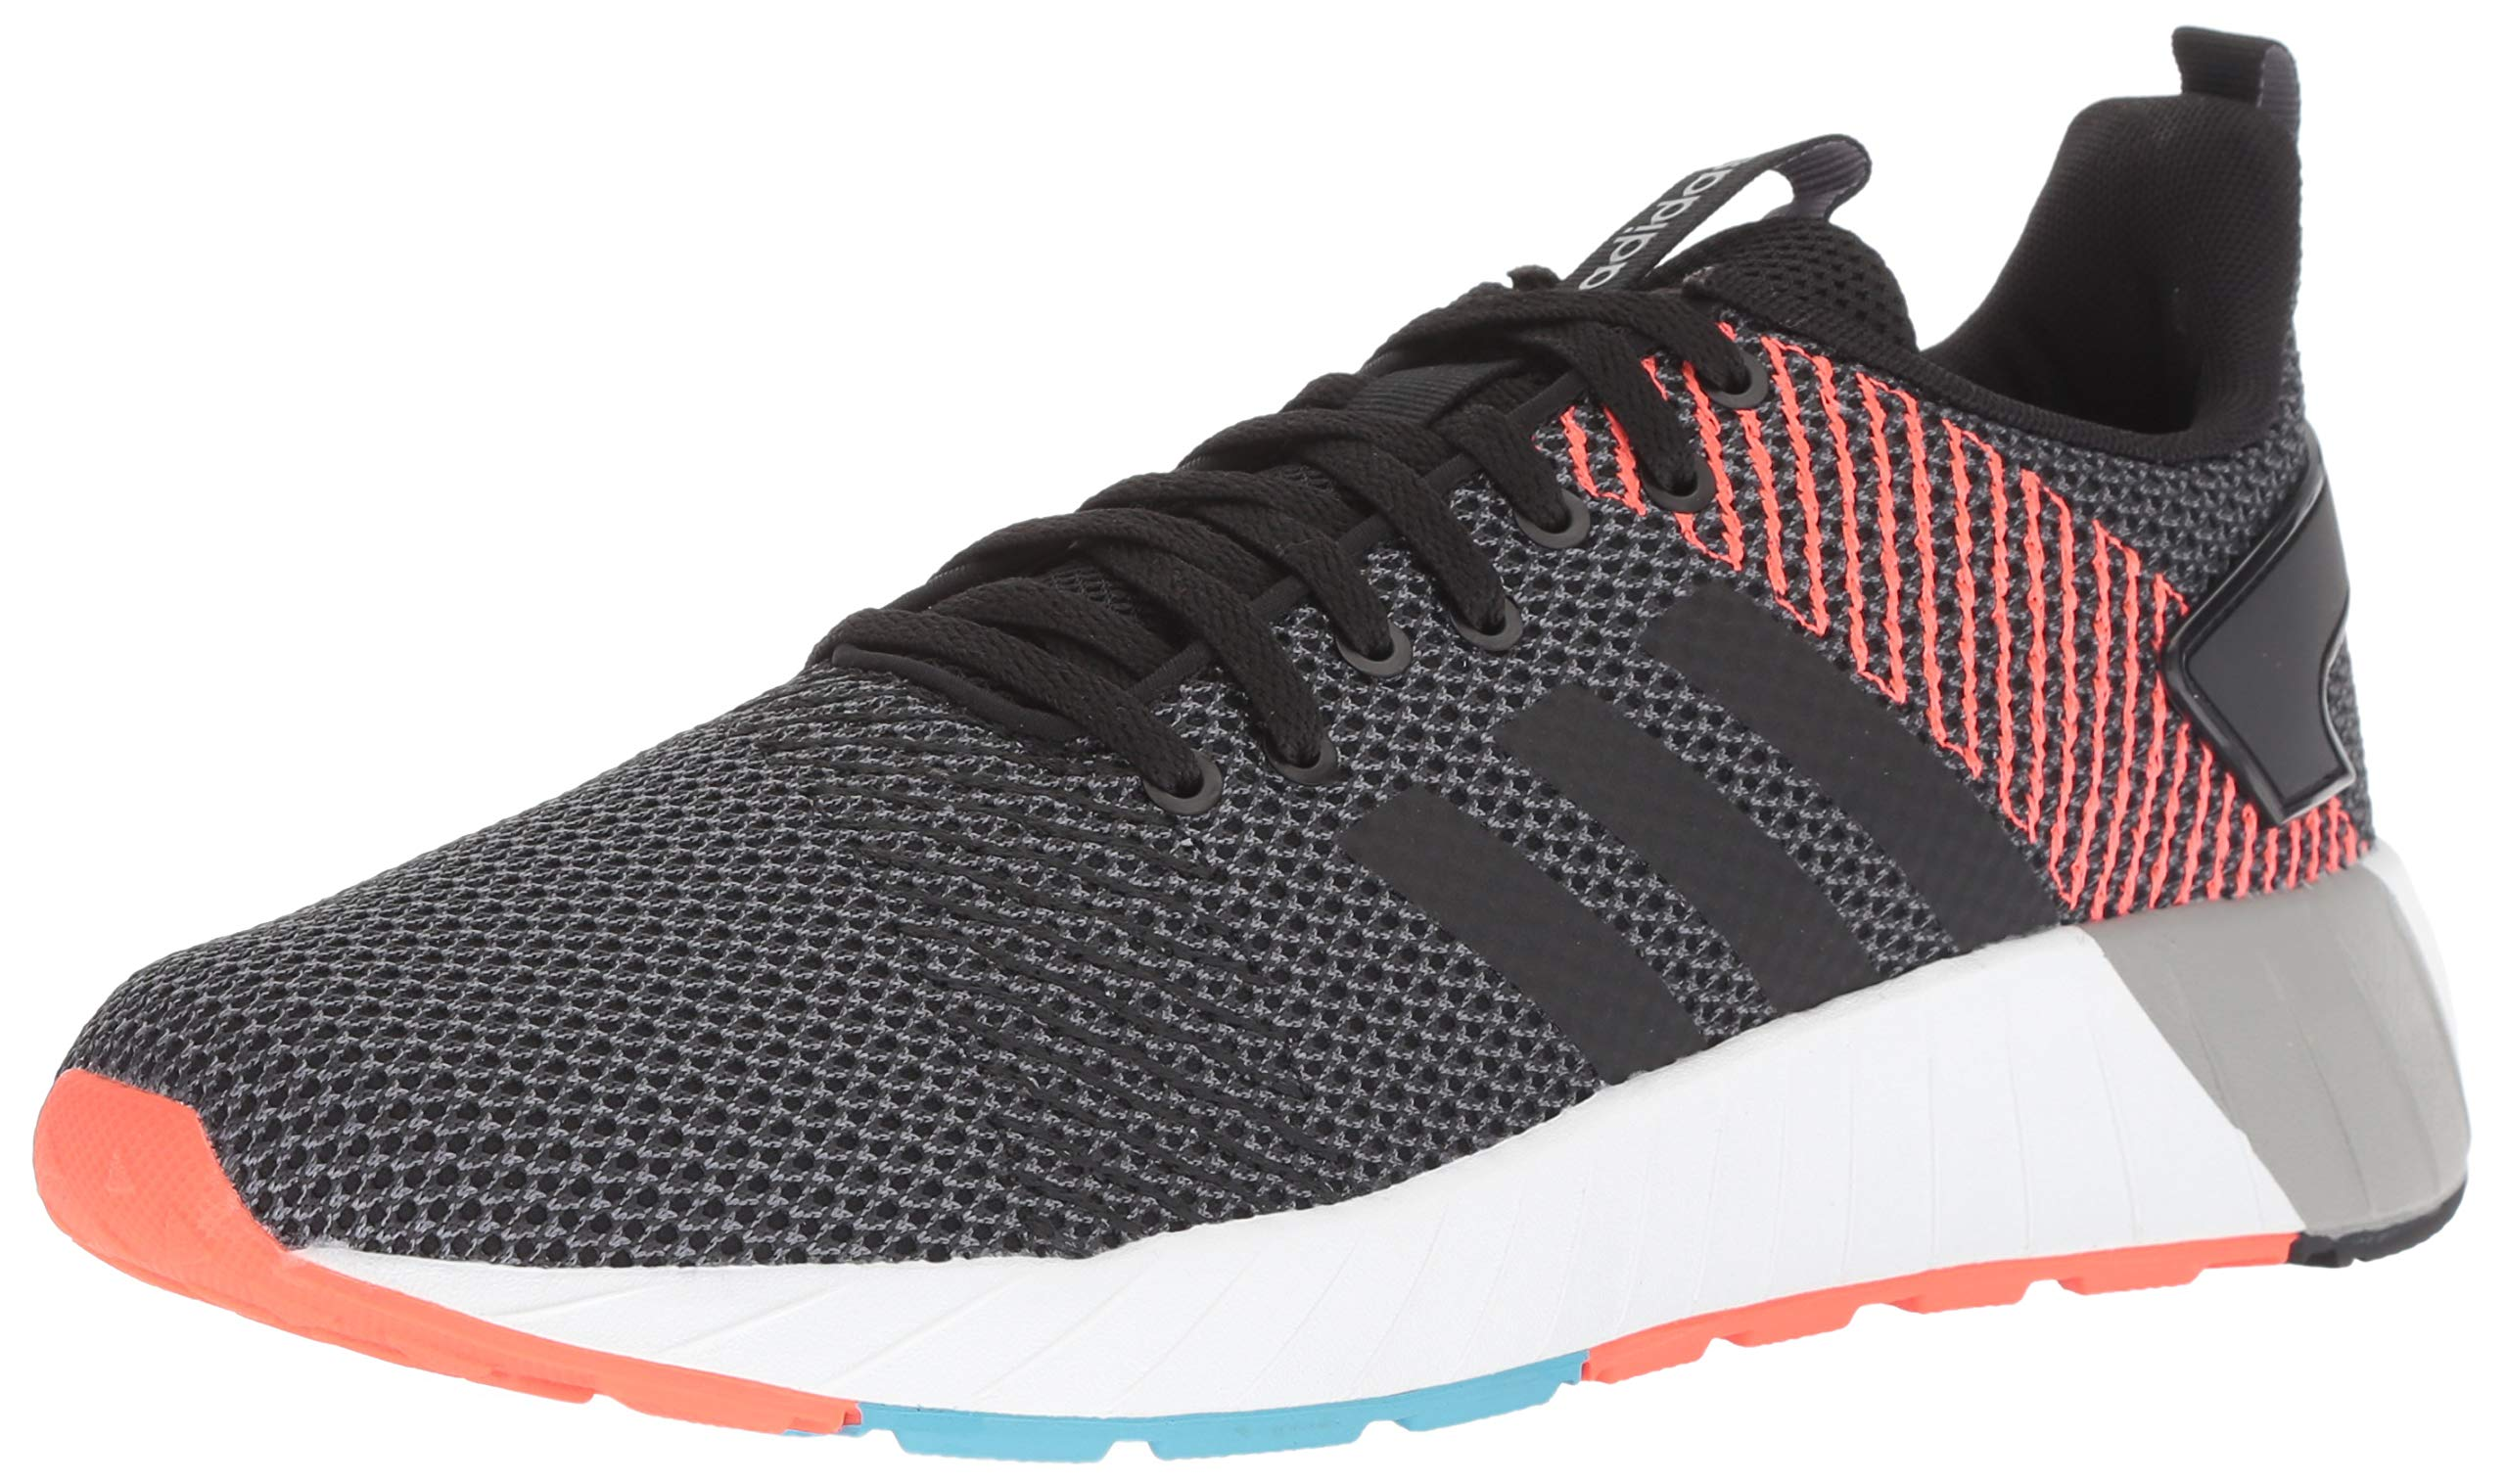 adidas Men's Questar BYD Running Shoe Black/Carbon, 6.5 M US by adidas (Image #1)